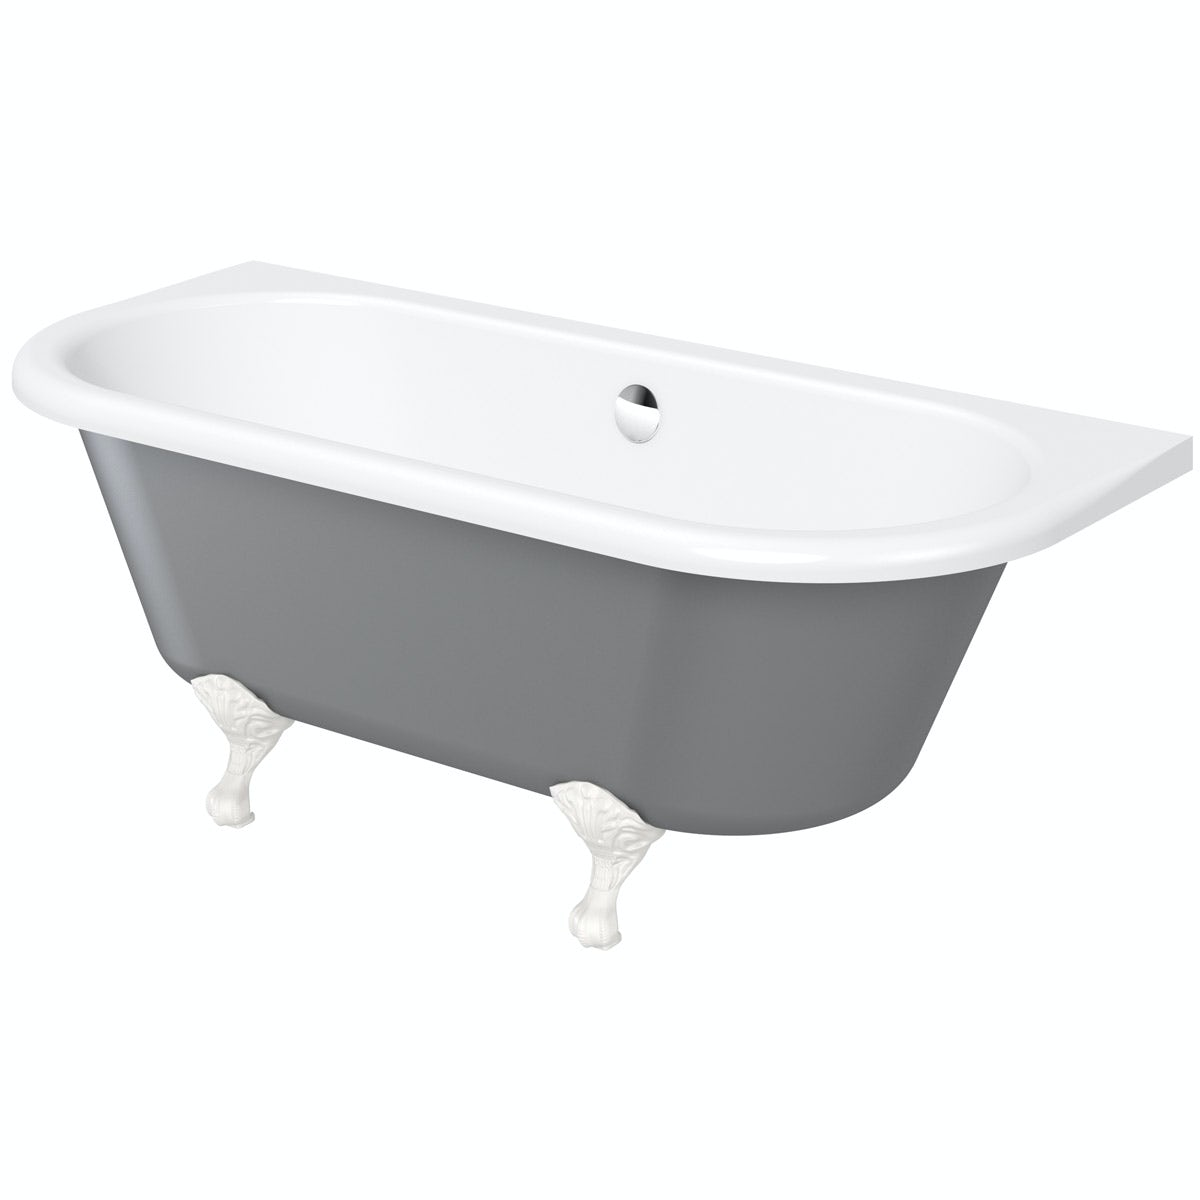 The Bath Co. Dulwich iron grey back to wall roll top bath with white ball and claw feet 1700 x 750